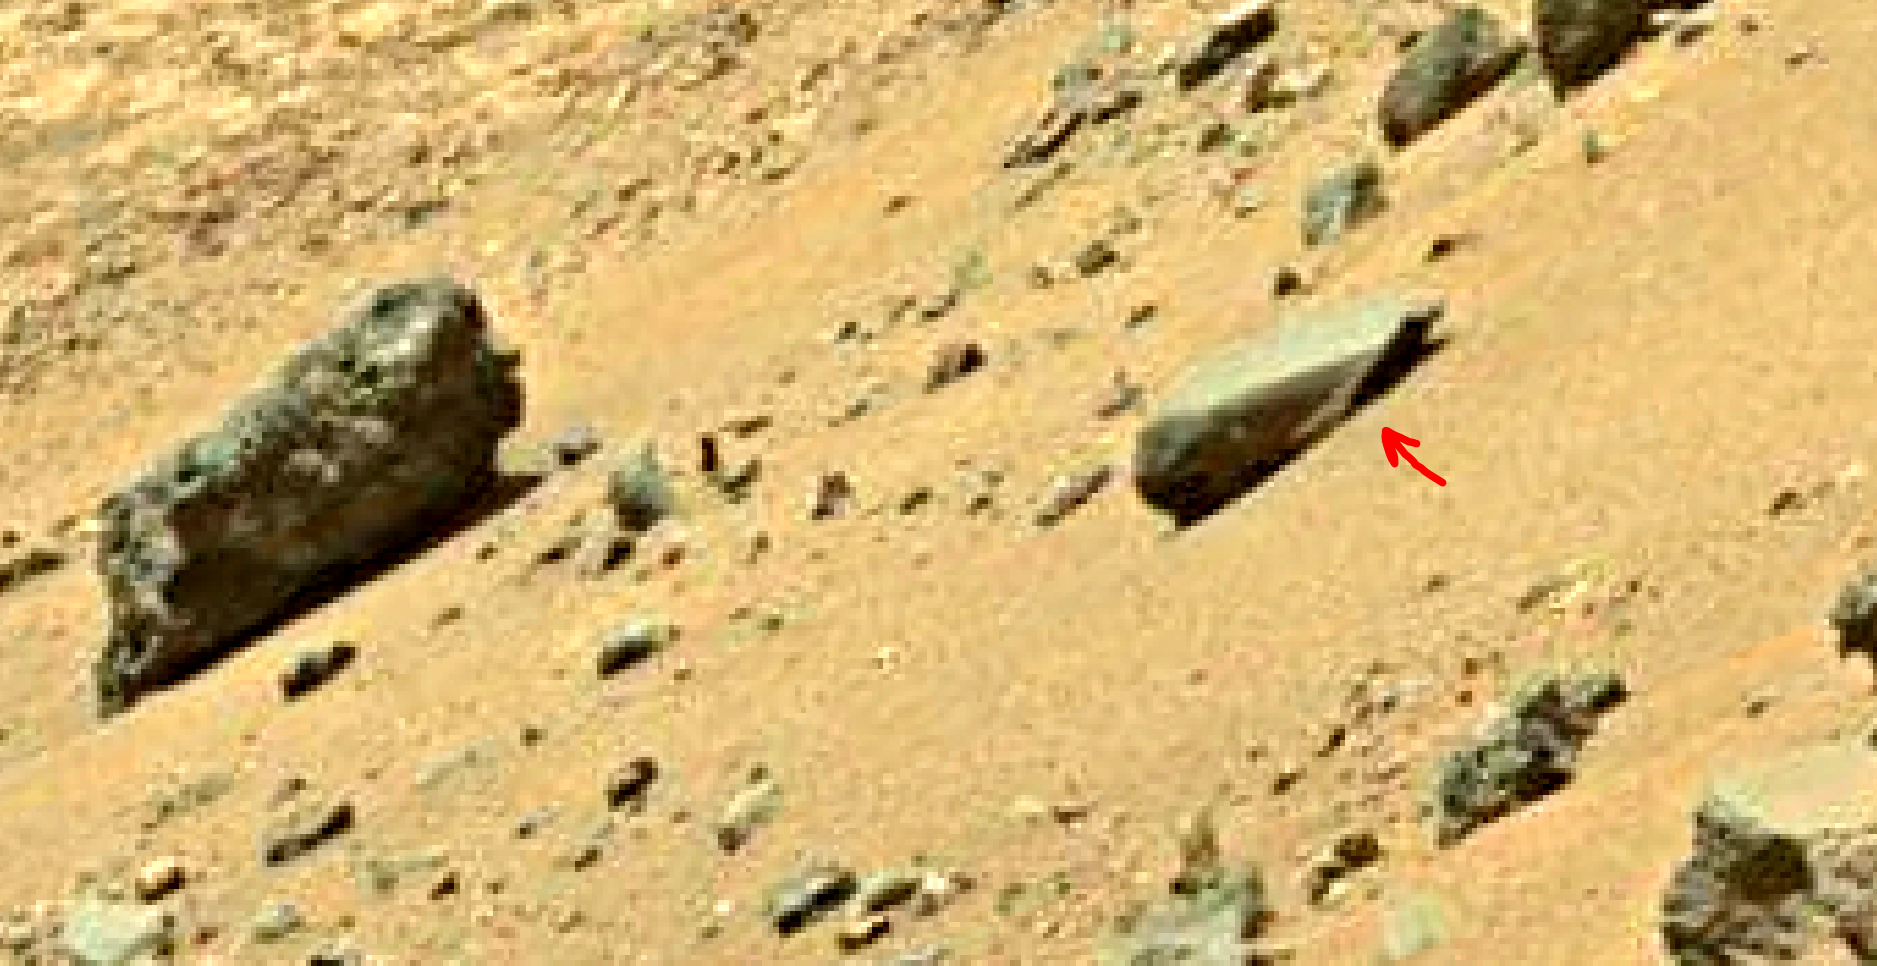 mars sol 1401 anomaly artifacts 9 was life on mars